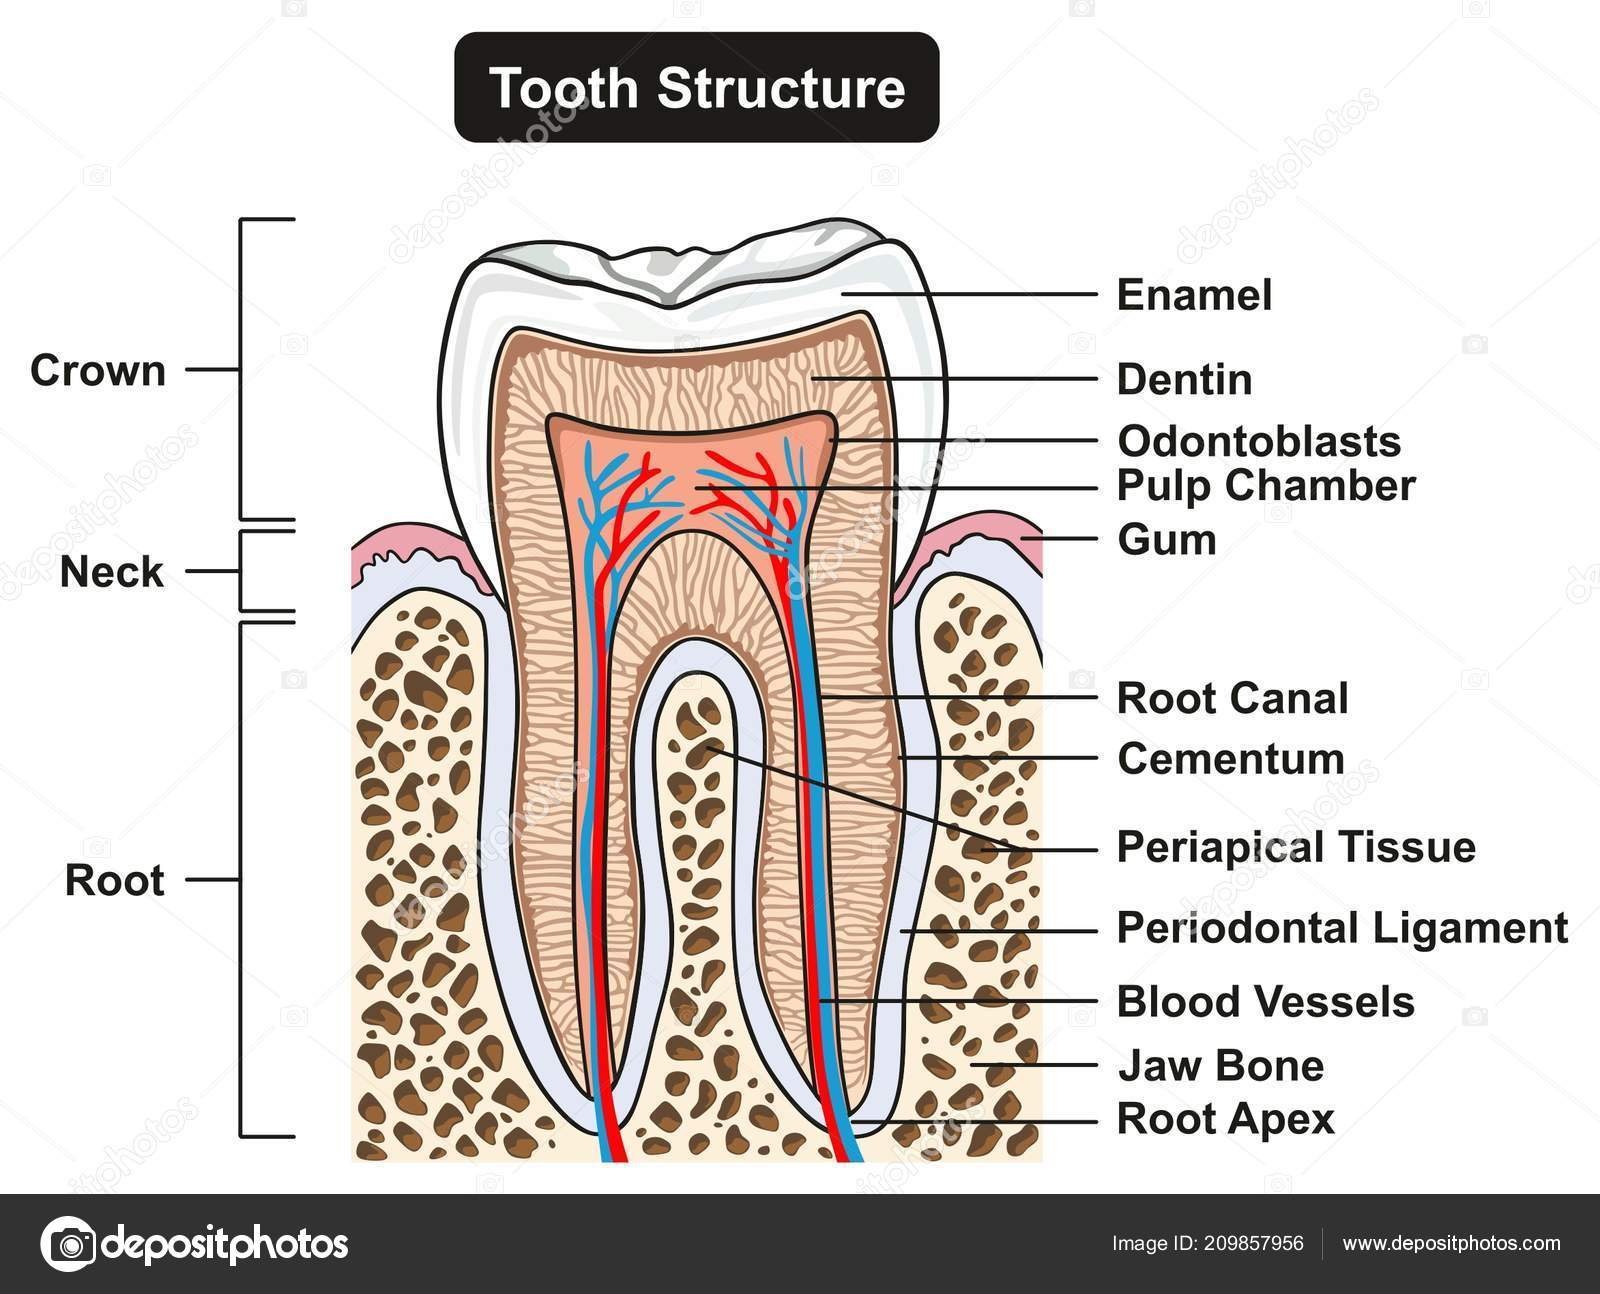 Labeled Tooth Cross Section Anatomy All Parts Including Crown Neck